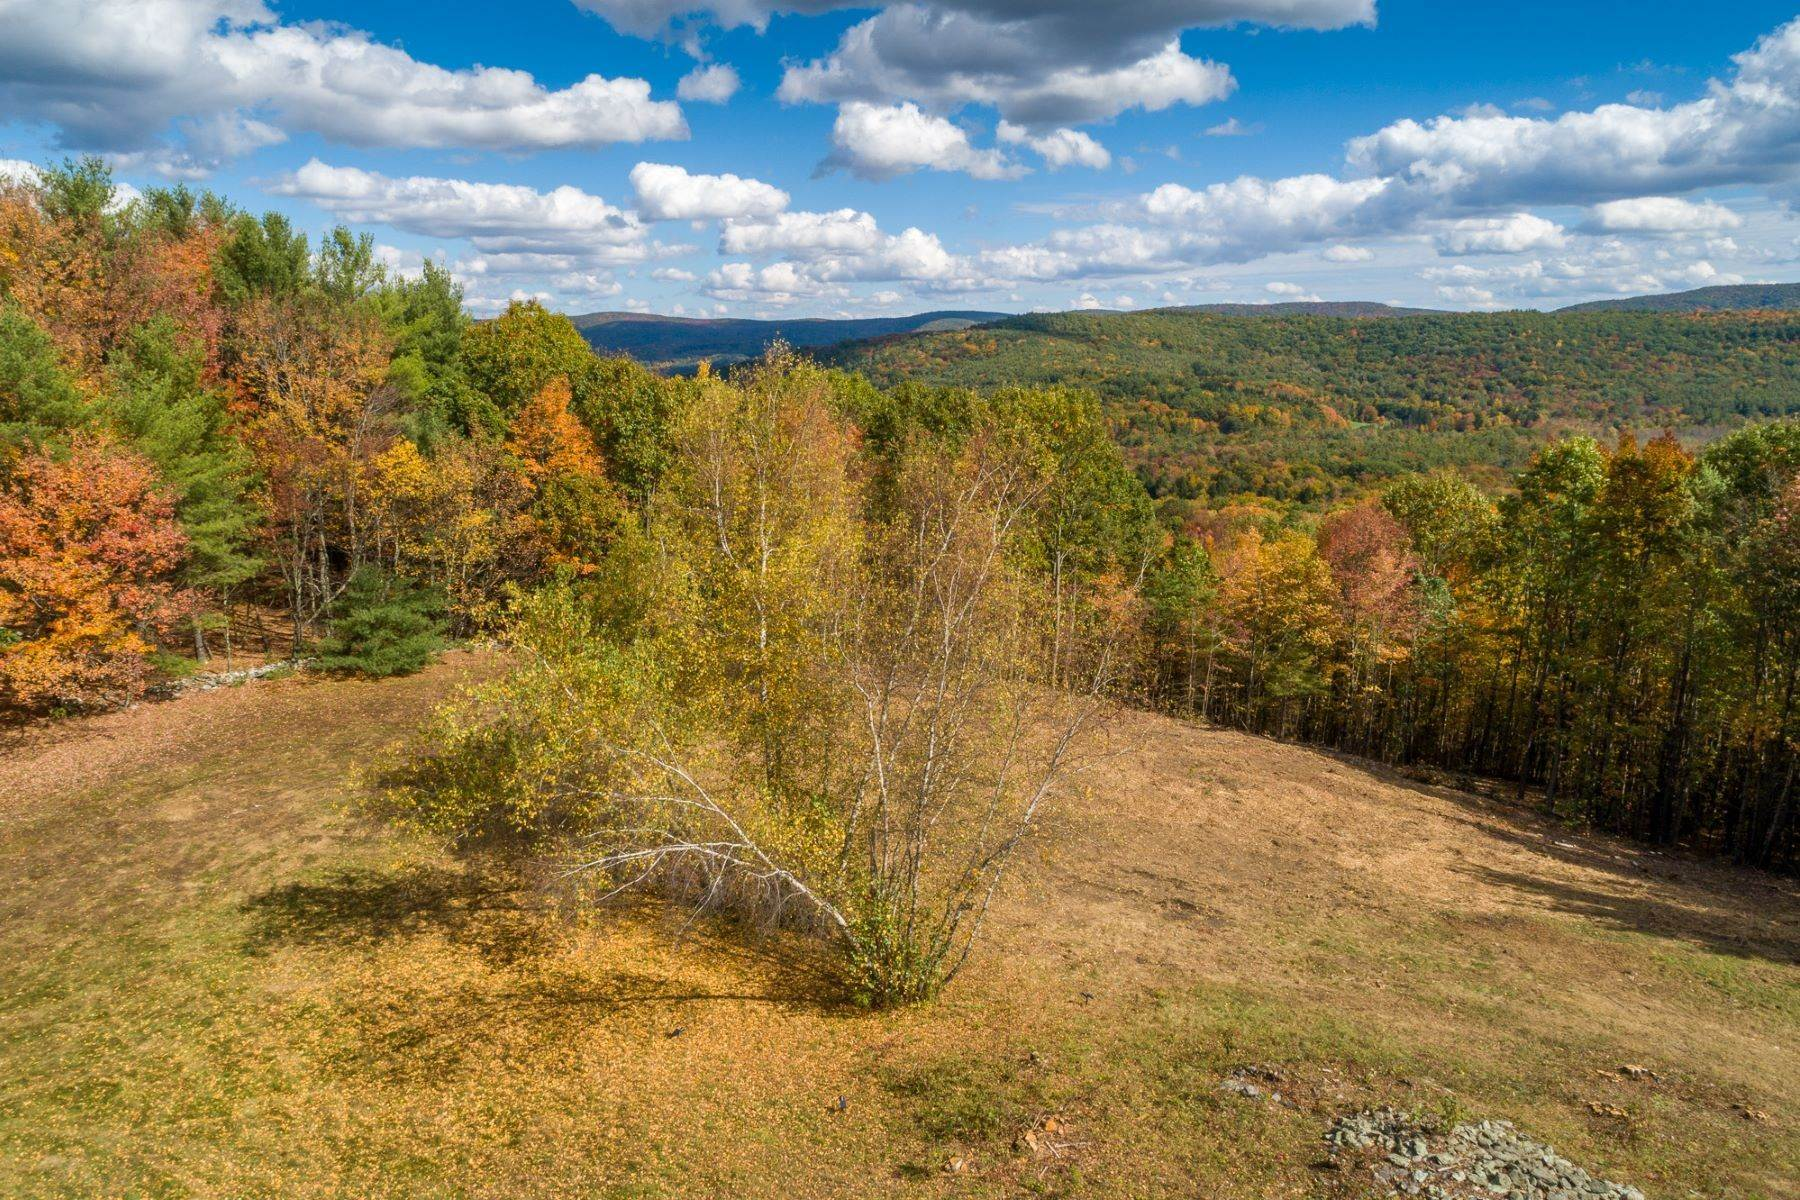 Land for Sale at Vacant Land With Views Over the Rolling Berkshire Hills Deer Ridge Road East Chatham, New York 12060 United States